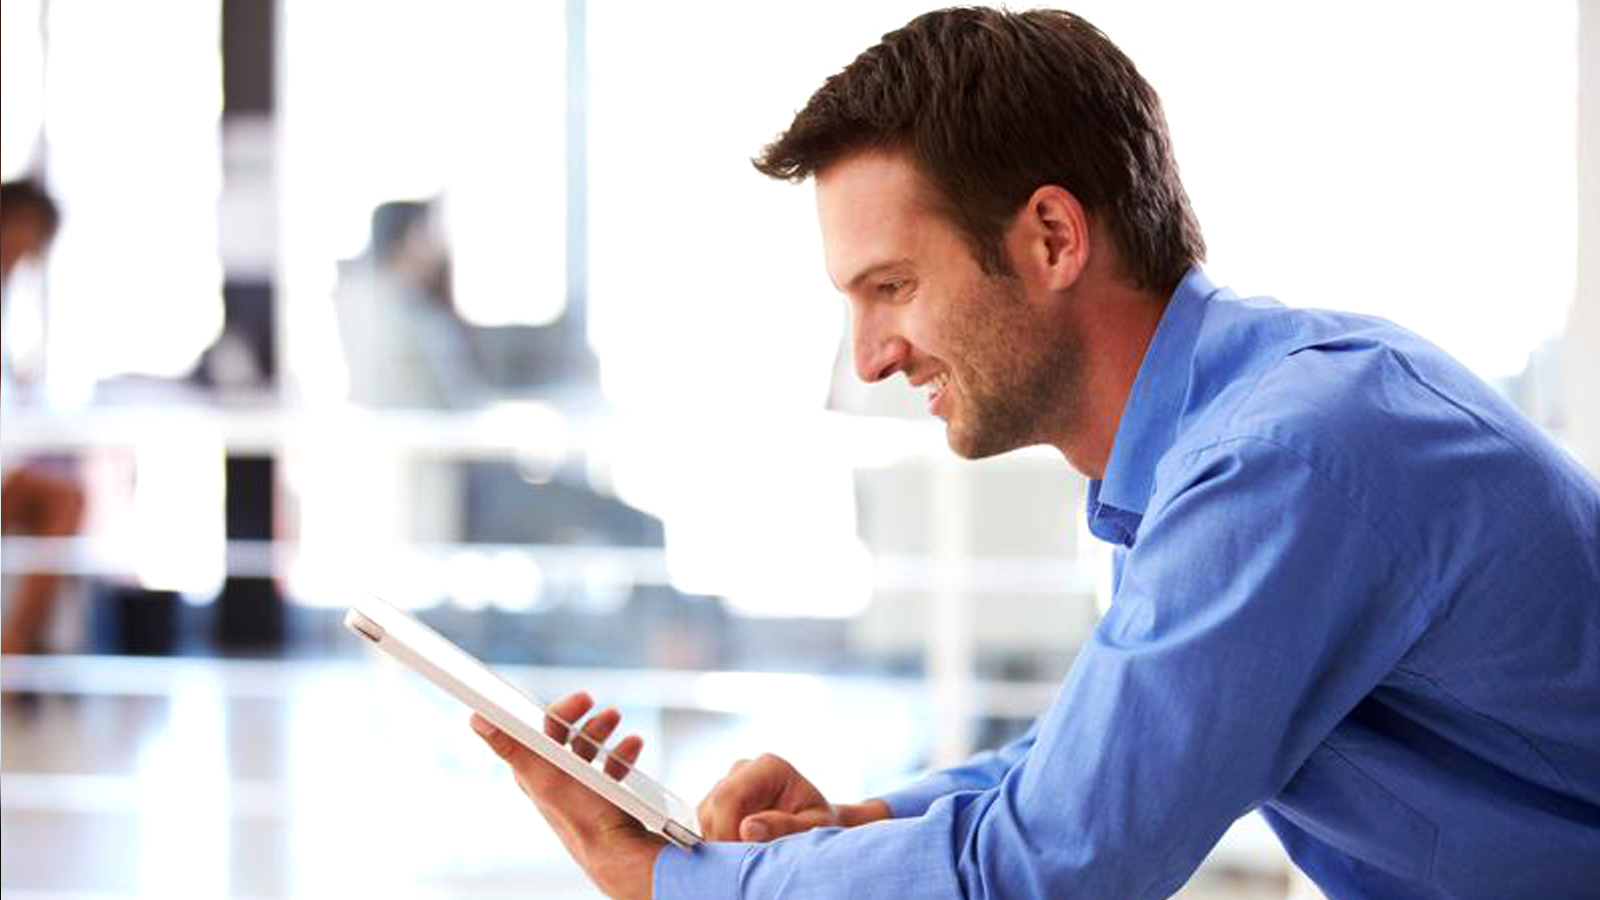 Man smiling at a tablet.